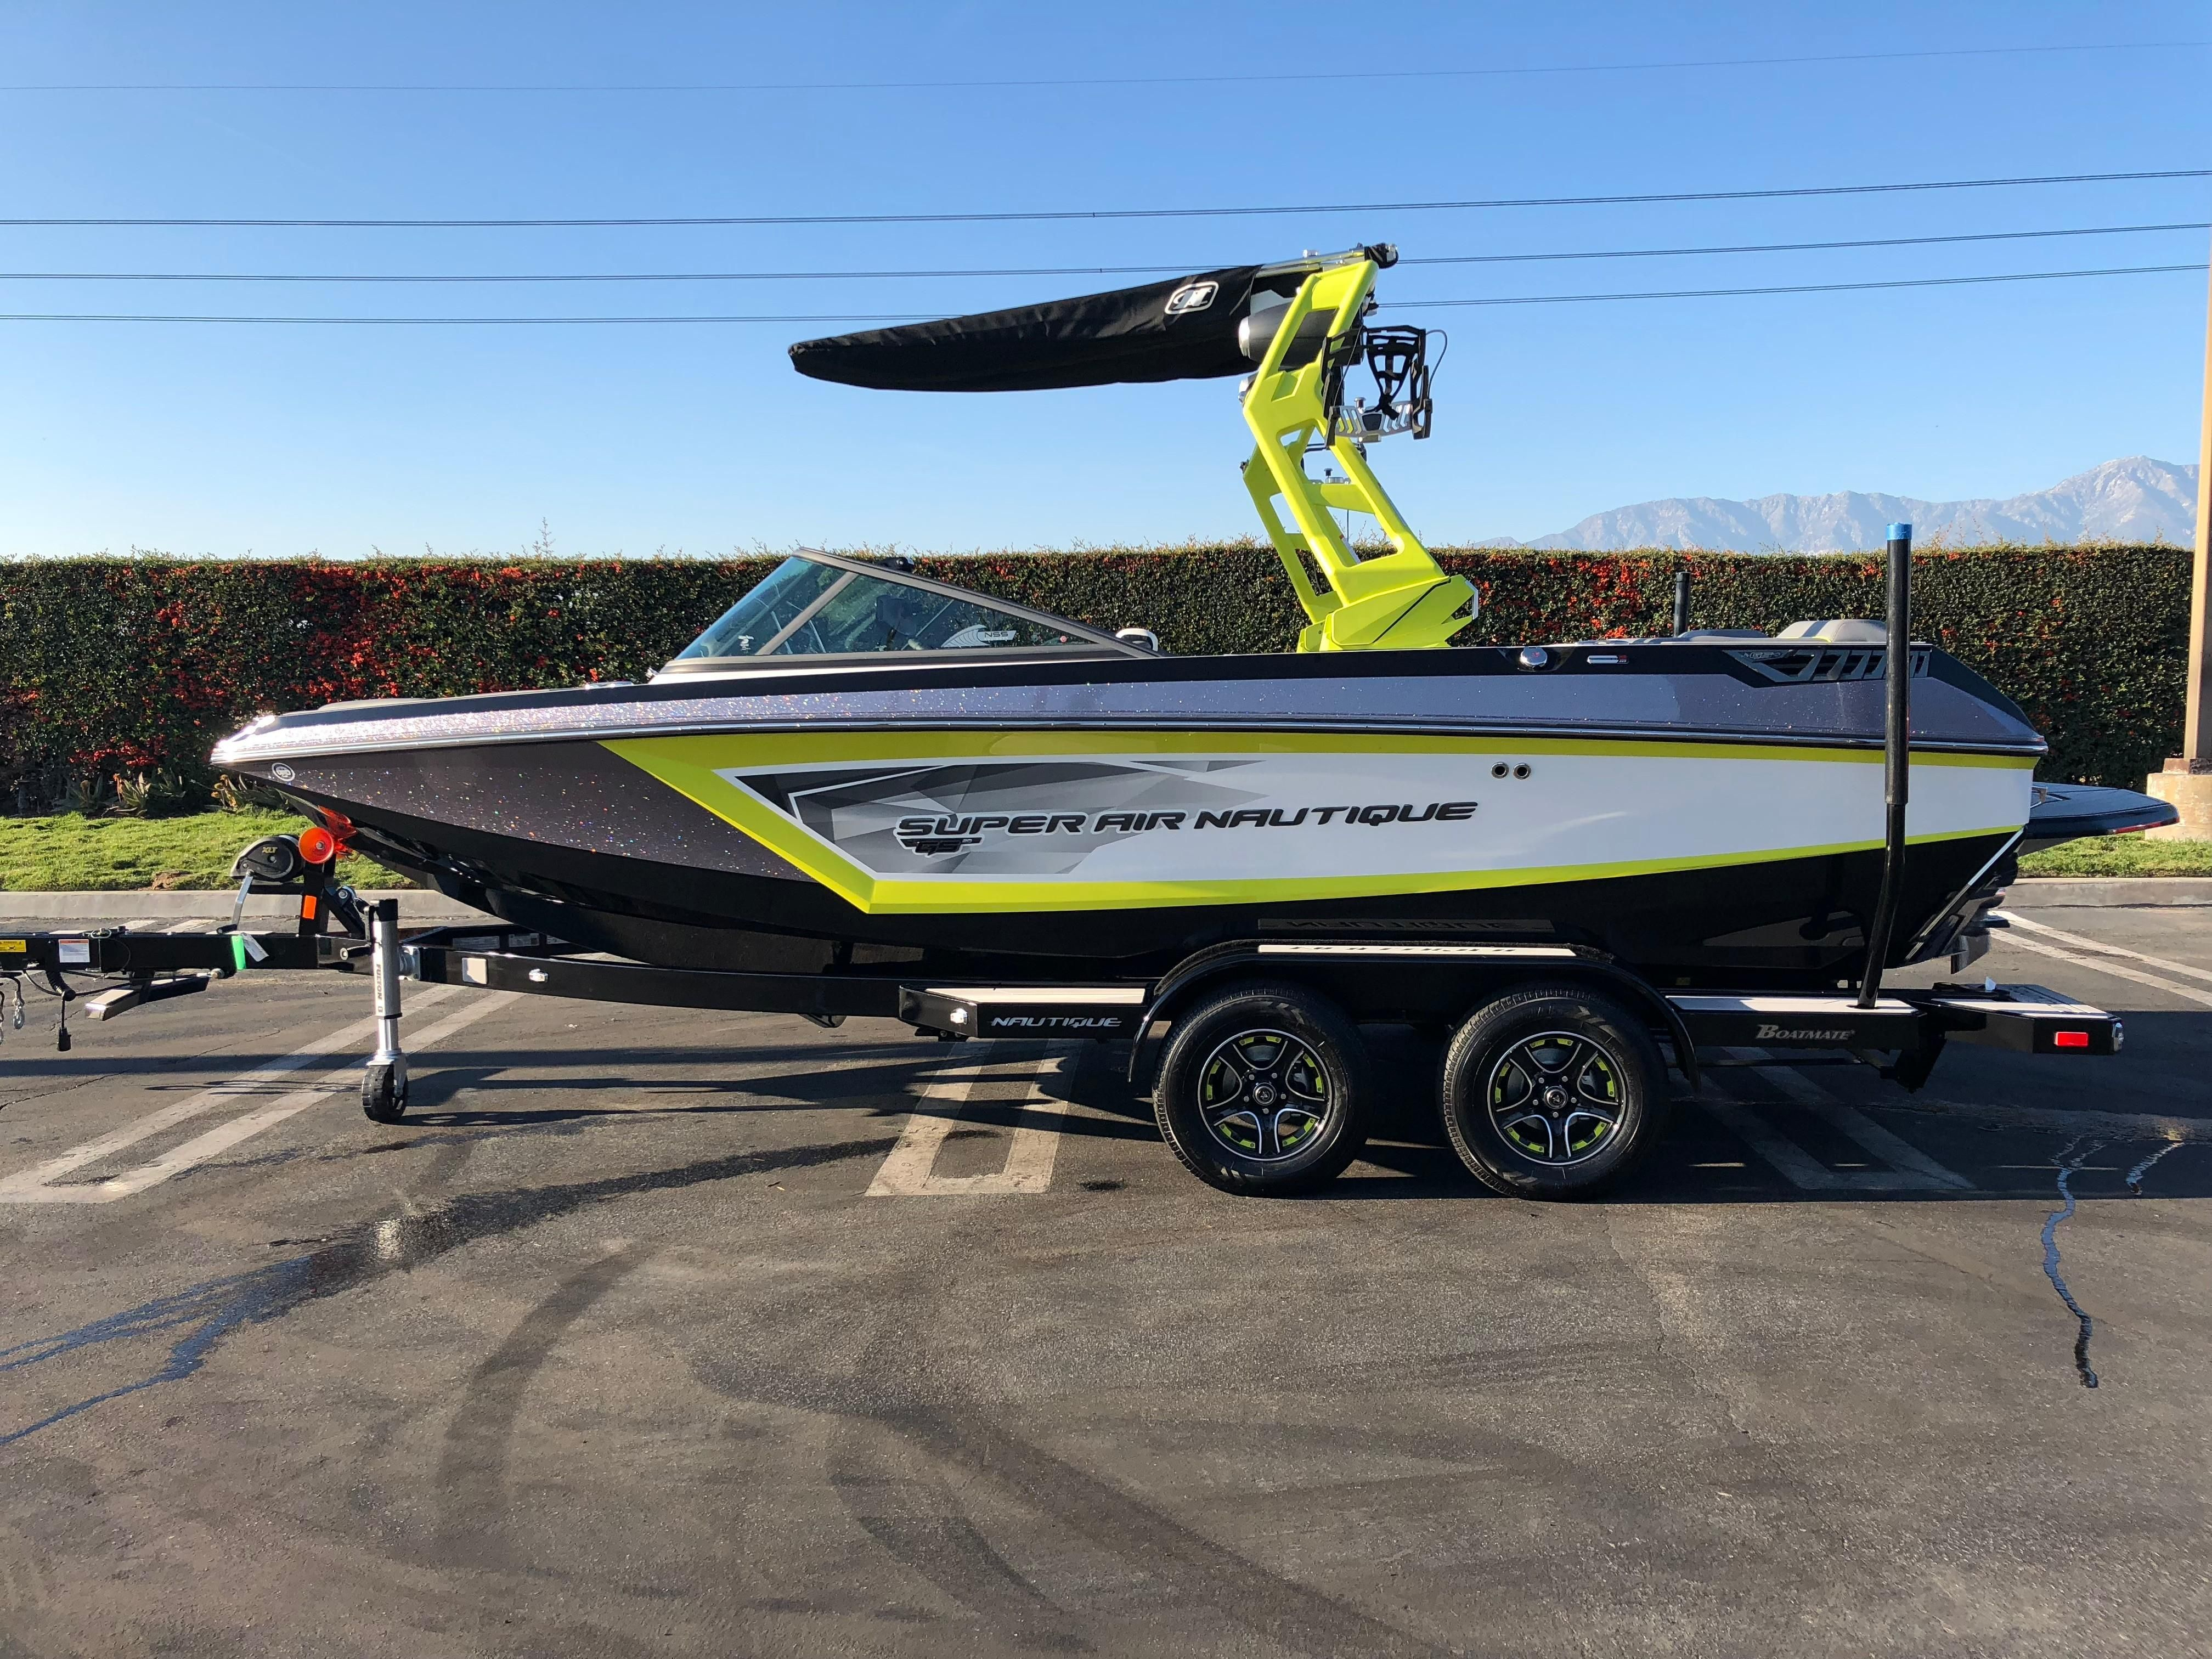 Inventory Sun Country Marine Group (SCMG) Tow boat